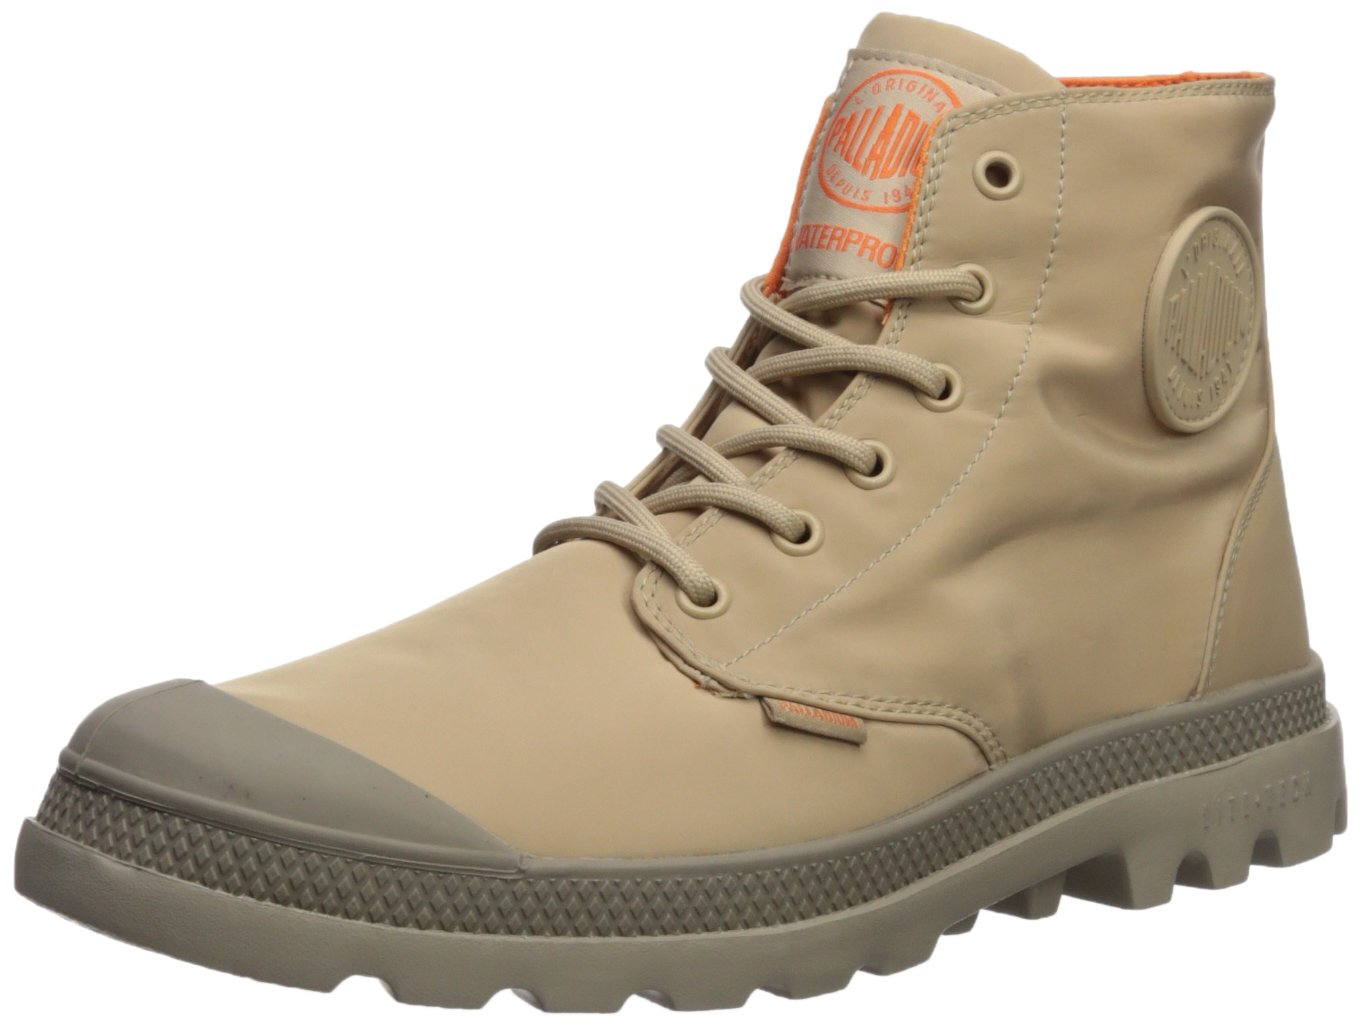 Palladium Unisex Puddle B(M) Ankle Boot B074P46WCJ 11 B(M) Puddle US|Beige cb0c14